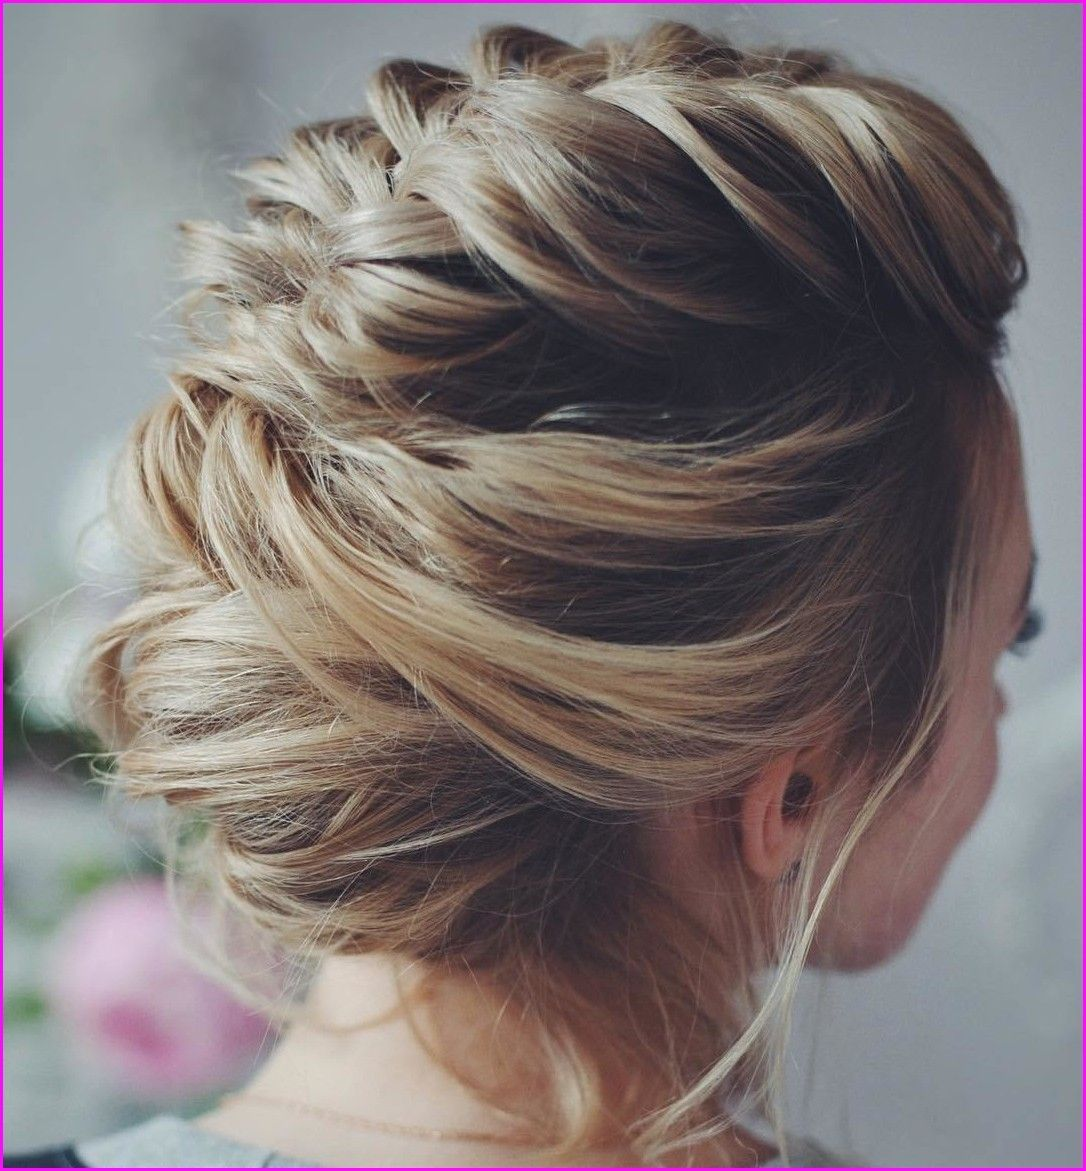 Try The Messy Curly Side Buns With Prom Hairstyles Hairstyles Prom Hairstyles Messy Prom Hairstyles For Short Hair Braids For Short Hair Cool Braid Hairstyles